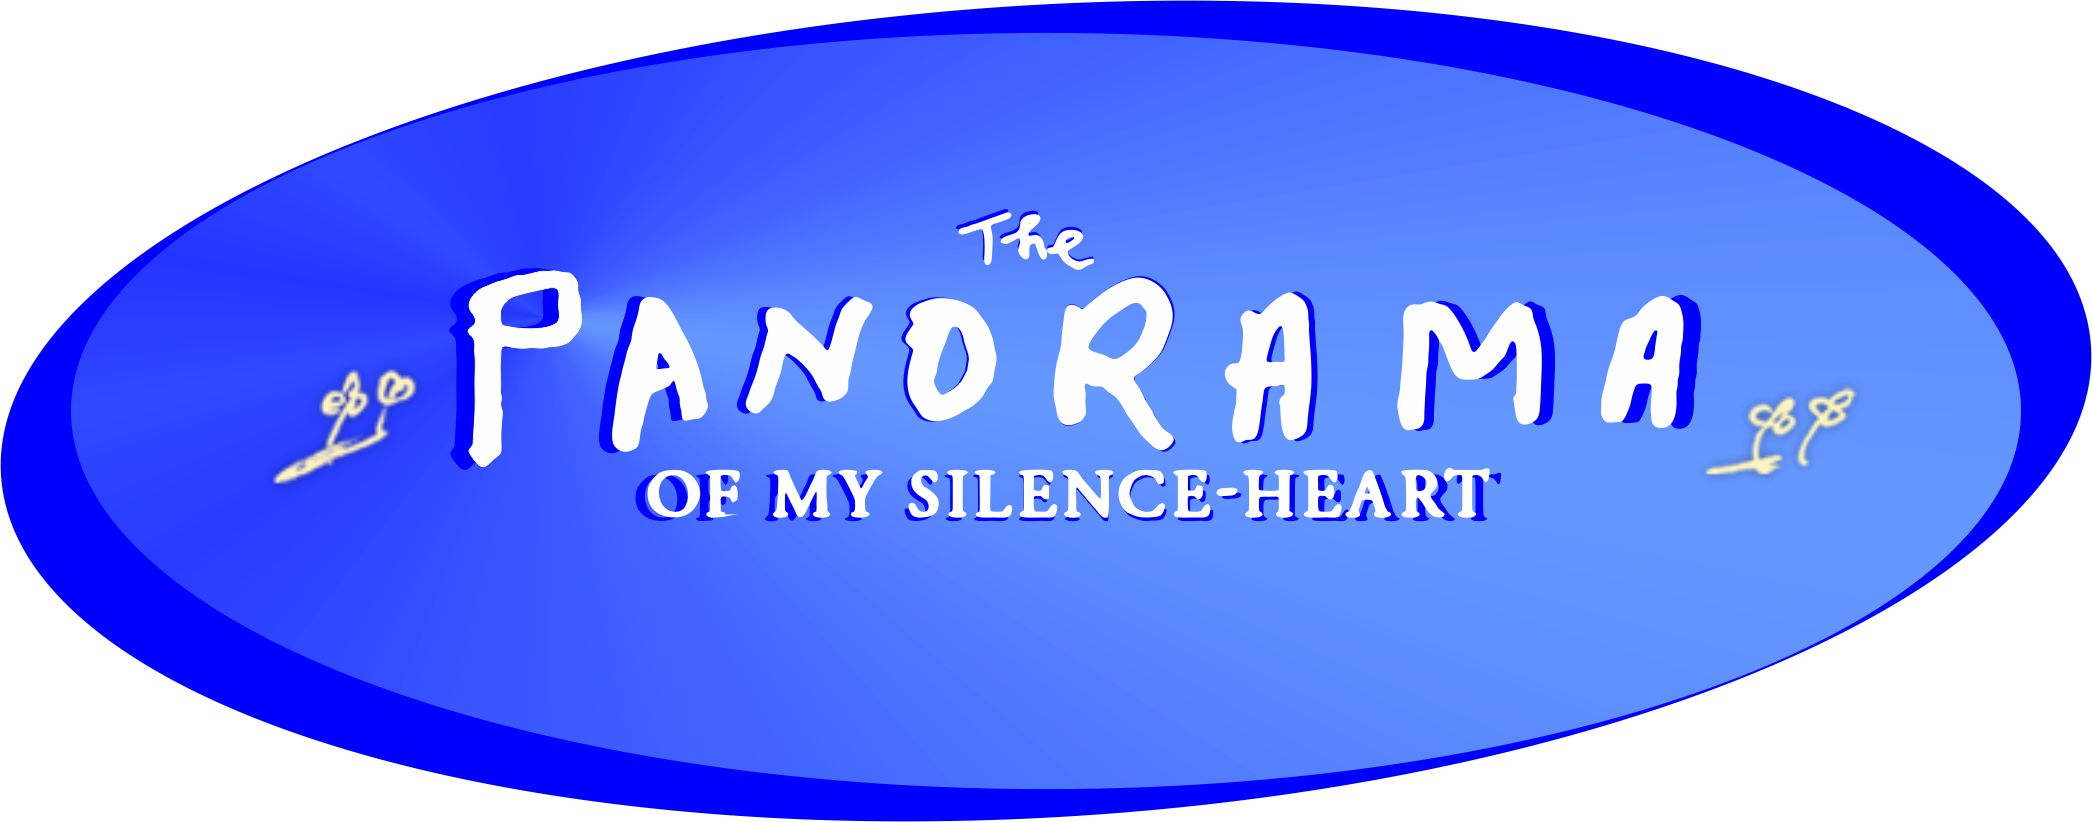 The panorama of my silence-heart (The Panorama of my Silence-Heart)